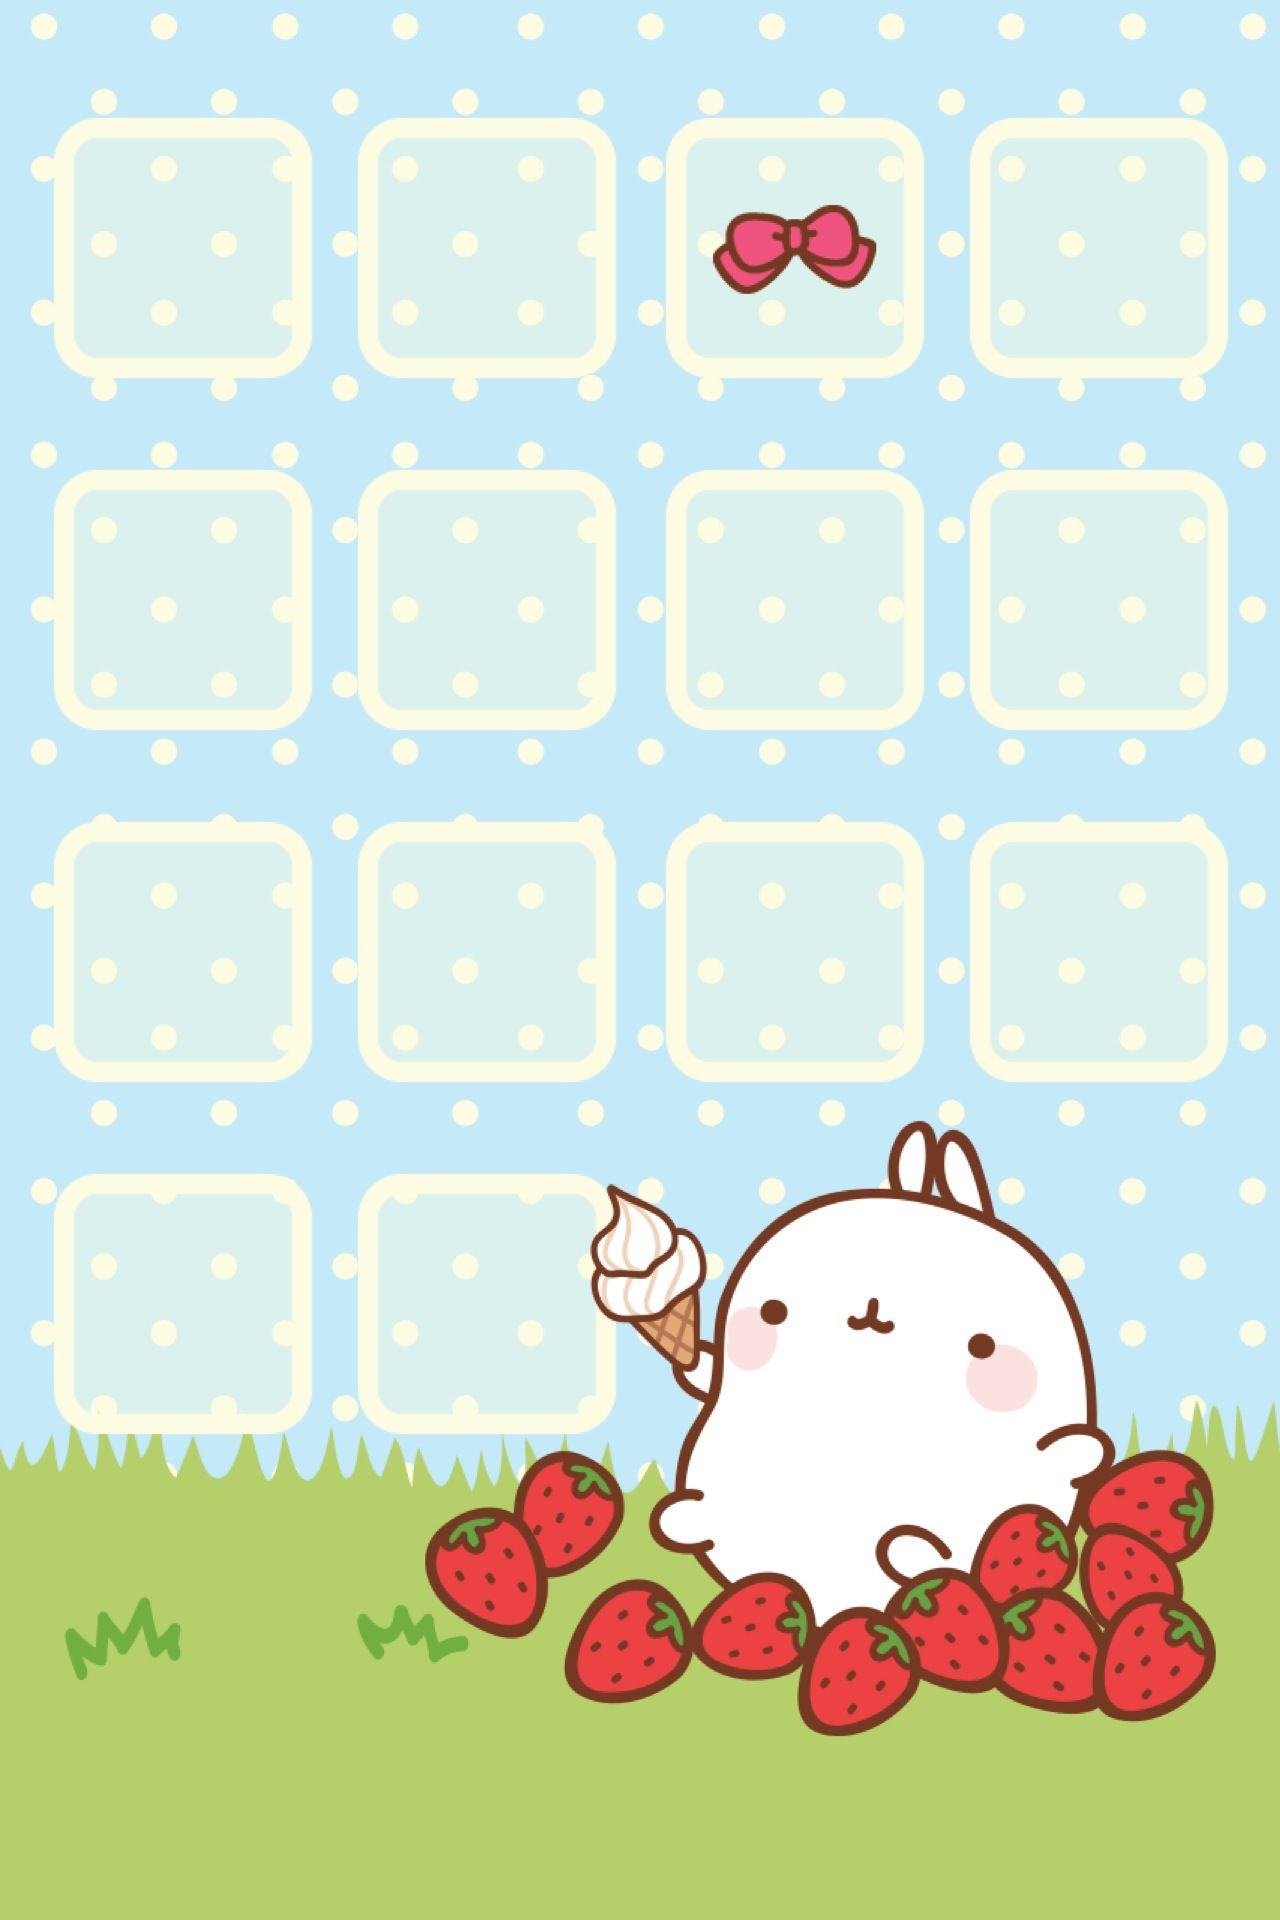 Cute home screen Kawaii wallpaper Papel de parede kawaii